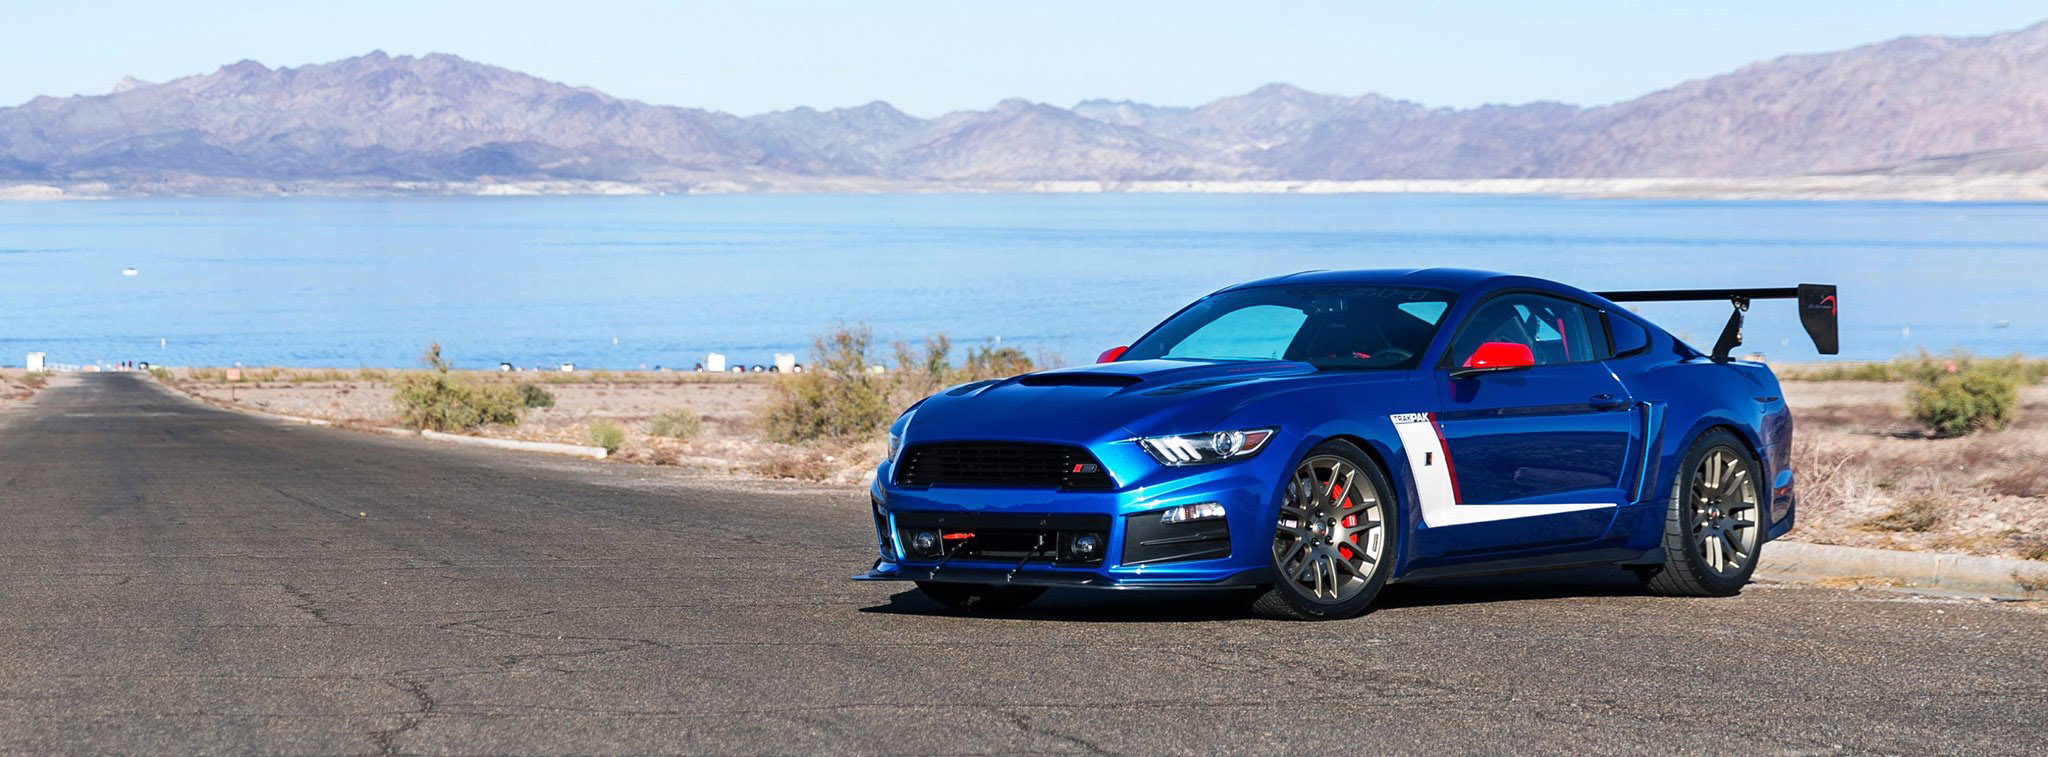 2015 ROUSH Performance Ford Mustang Stage 3 - Muscle Cars News and Pictures